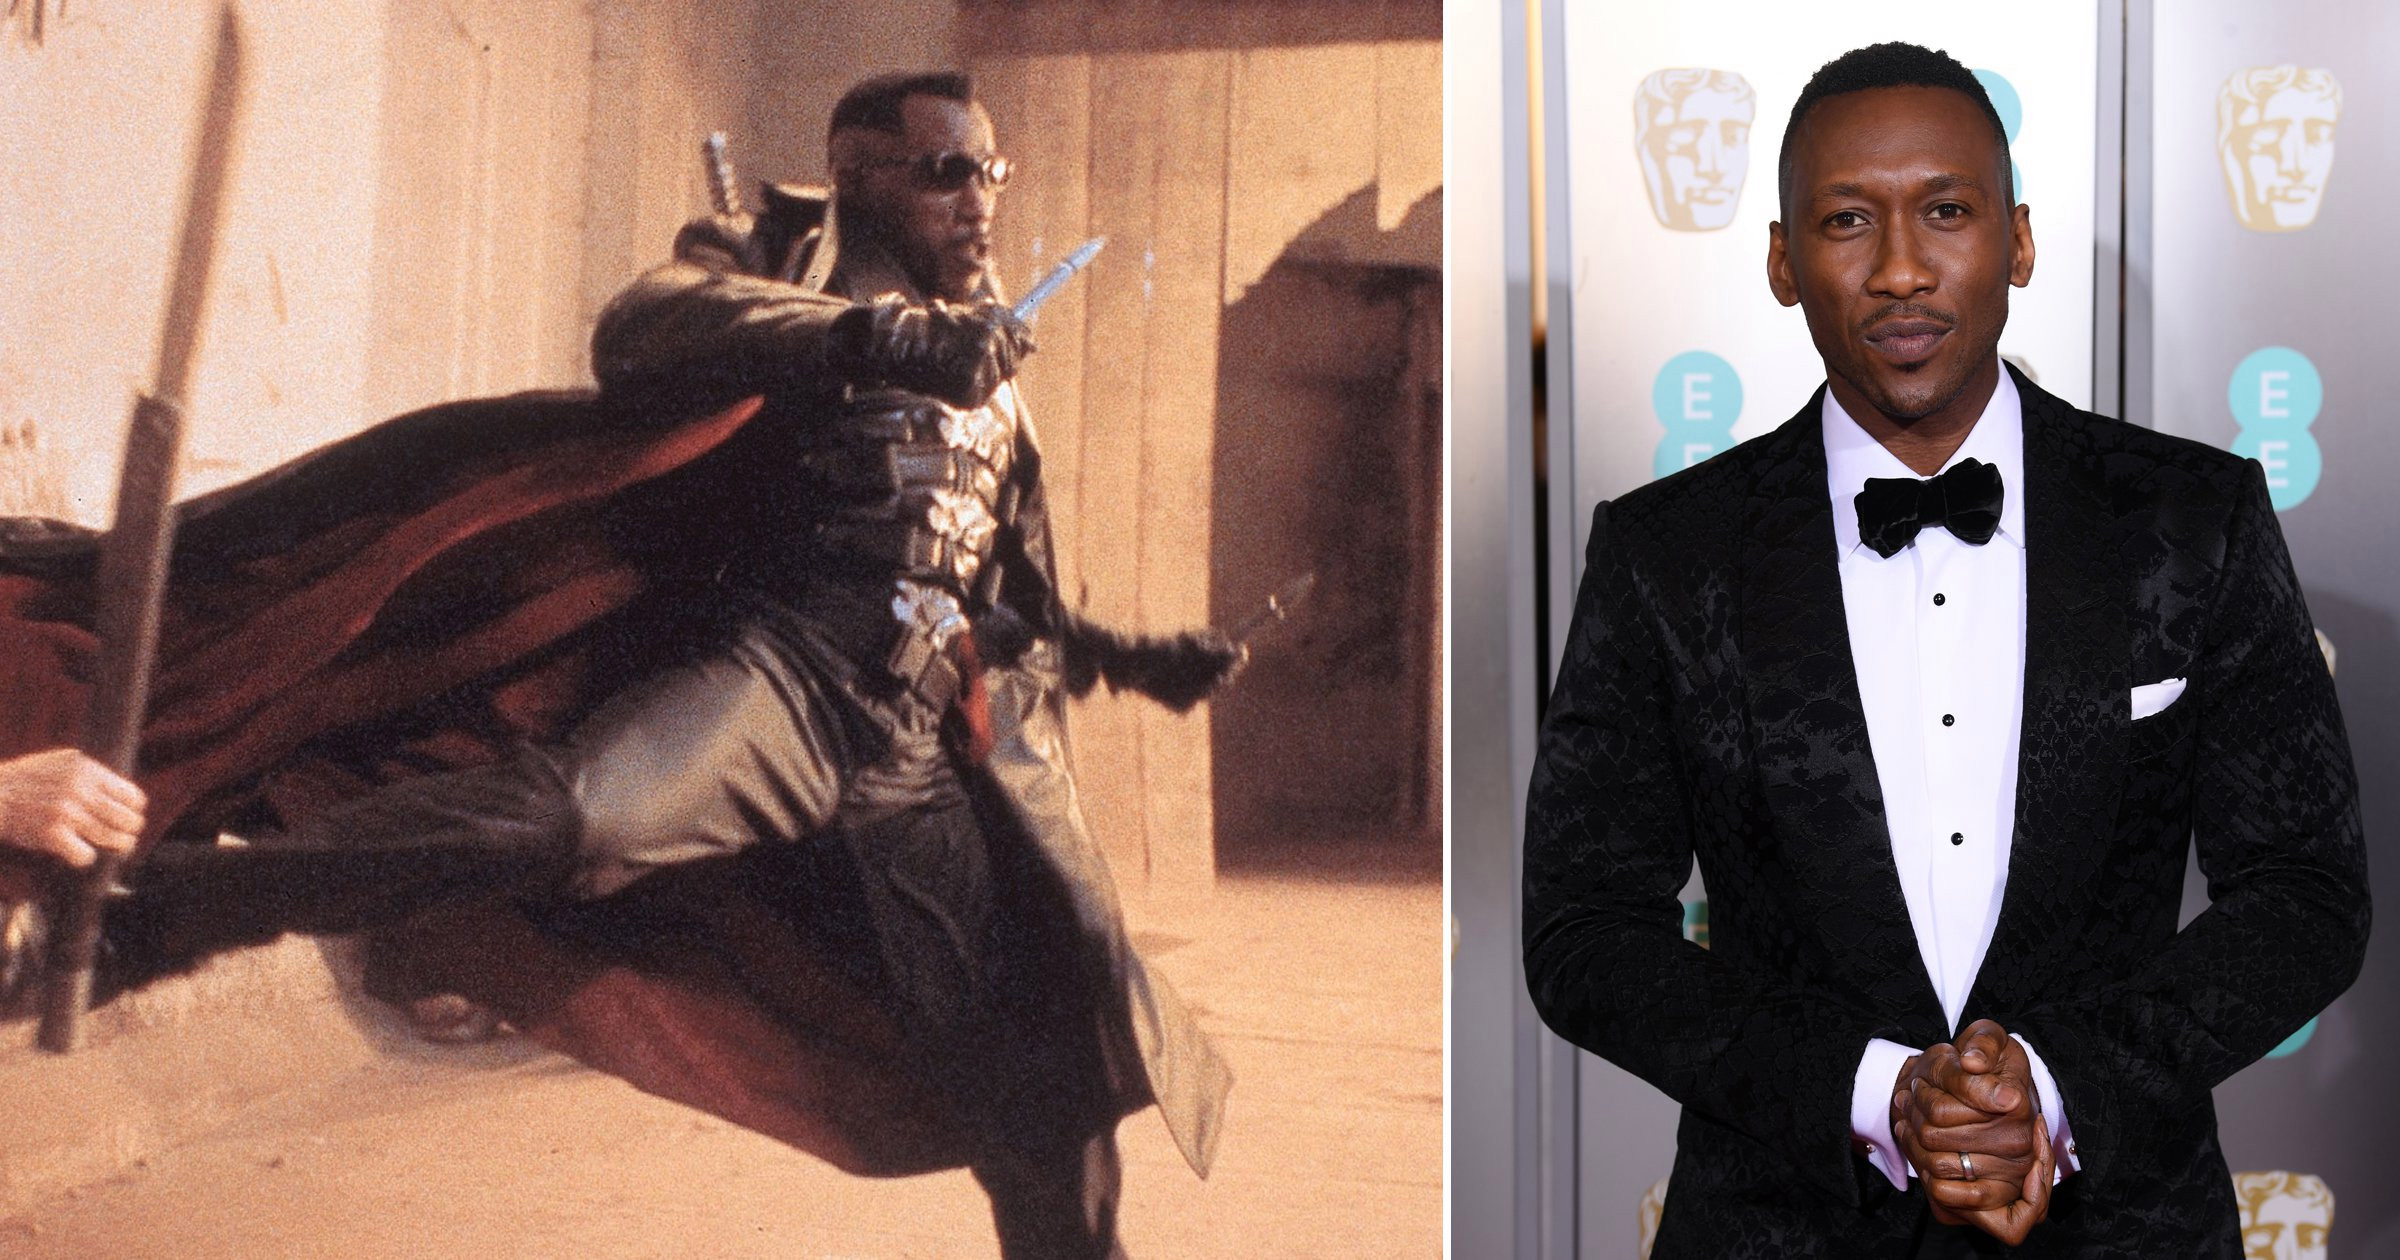 Wesley Snipes gives advice to future Blade star Mahershala Ali: 'I got your back'